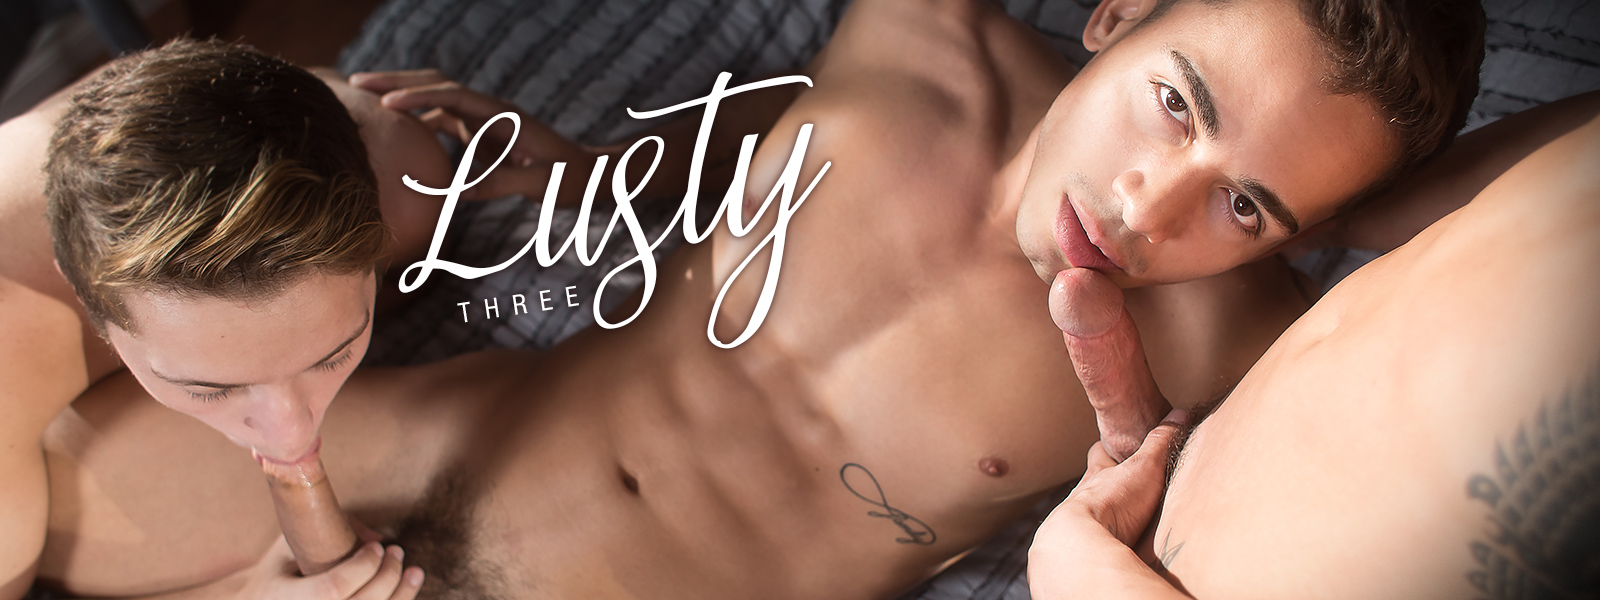 Helix Studios Lusty Three Featuring Andy Taylor, Ashton Summers, and Jacob Hansen